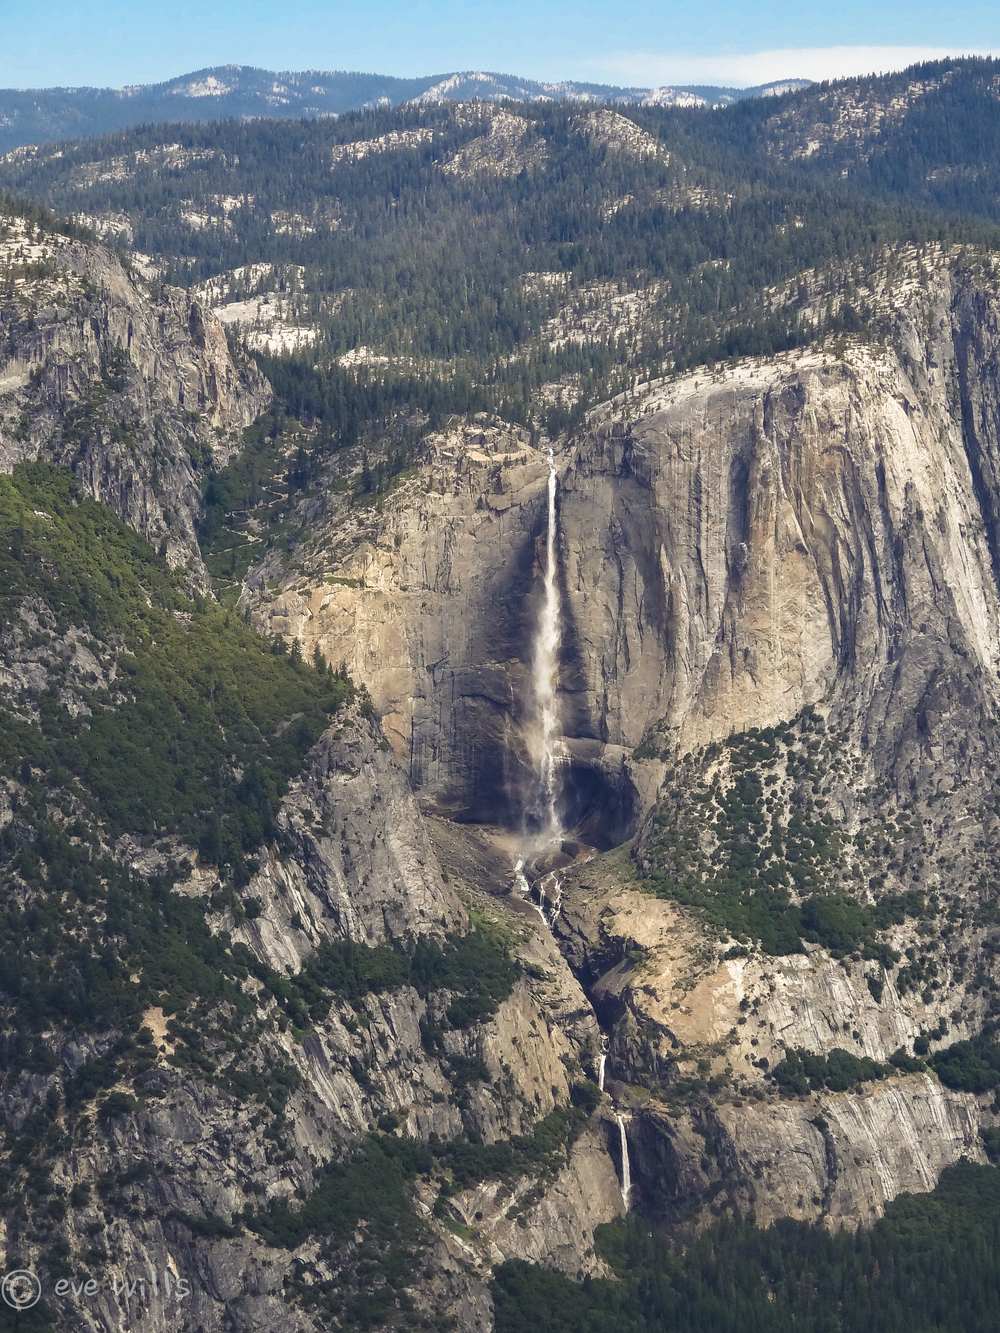 Iconic Yosemite Falls in springtime glory.